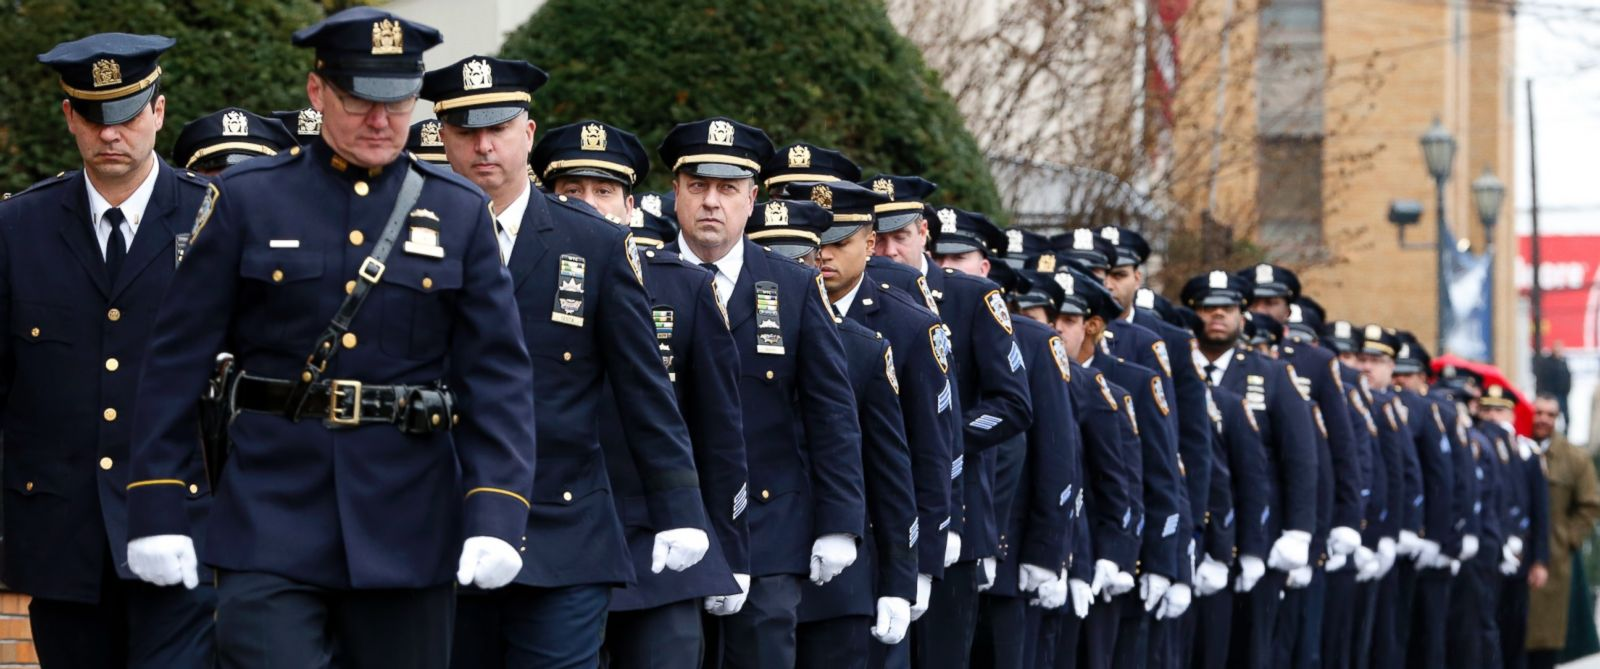 PHOTO: New York City police officers march before funeral services for police officer Wenjian Liu at Aievoli Funeral Home, Jan. 4, 2015, in the Brooklyn borough of New York.